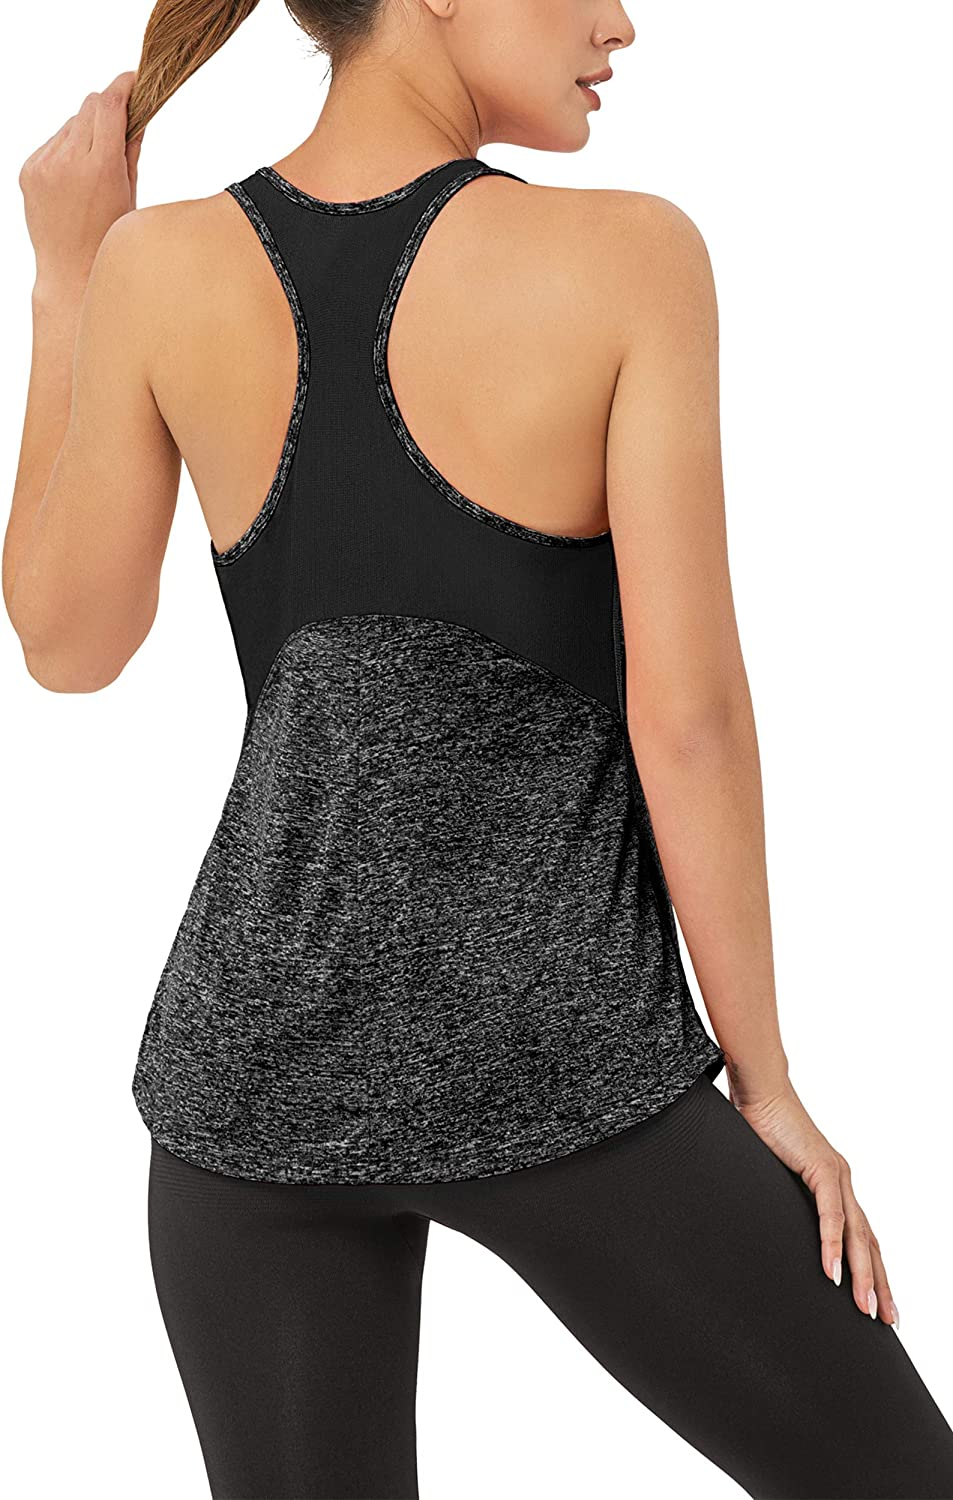 VIISHOW Yoga Tank Limited time trial price Tops for Sleeveless Me NEW Women Workout